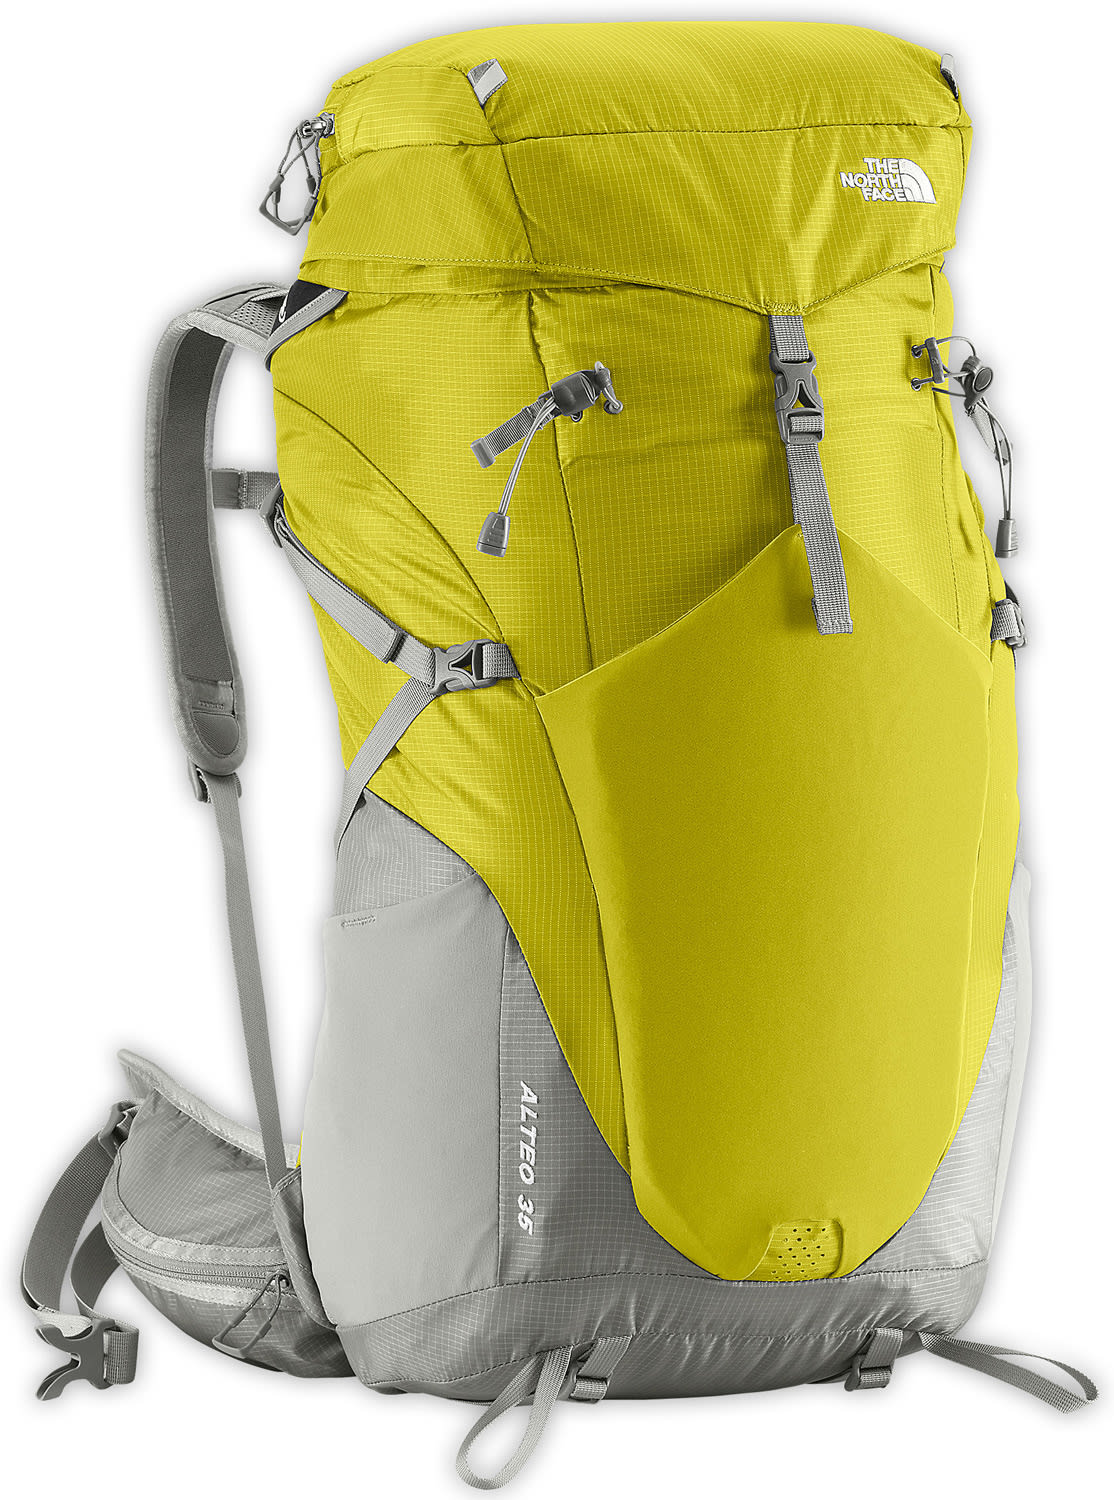 The North Face Alteo 35 Backpack Citronelle Green/Q-Silver Grey 35L (S/M)